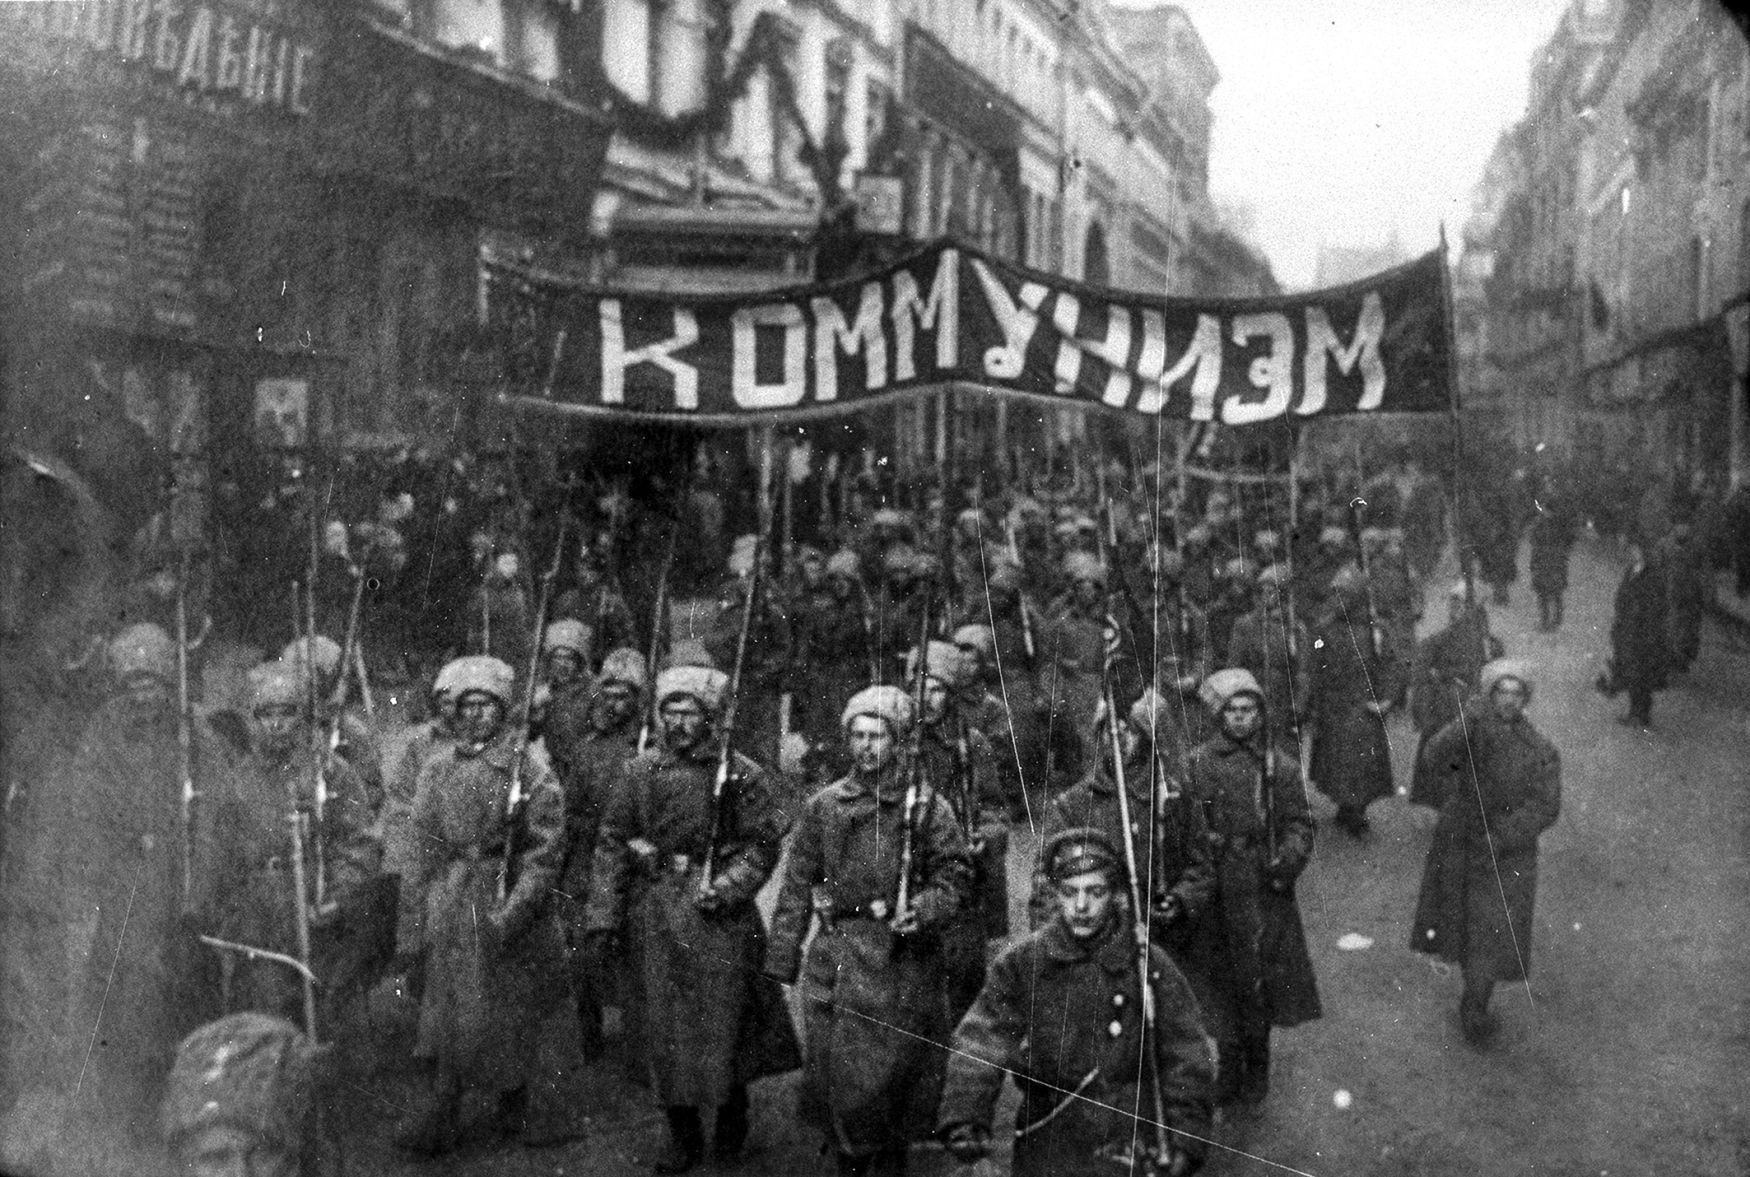 Russian Revolution Attractions in Moscow-Armed soldiers carry a banner reading 'Communism', Nikolskaya street, Moscow, October 1917